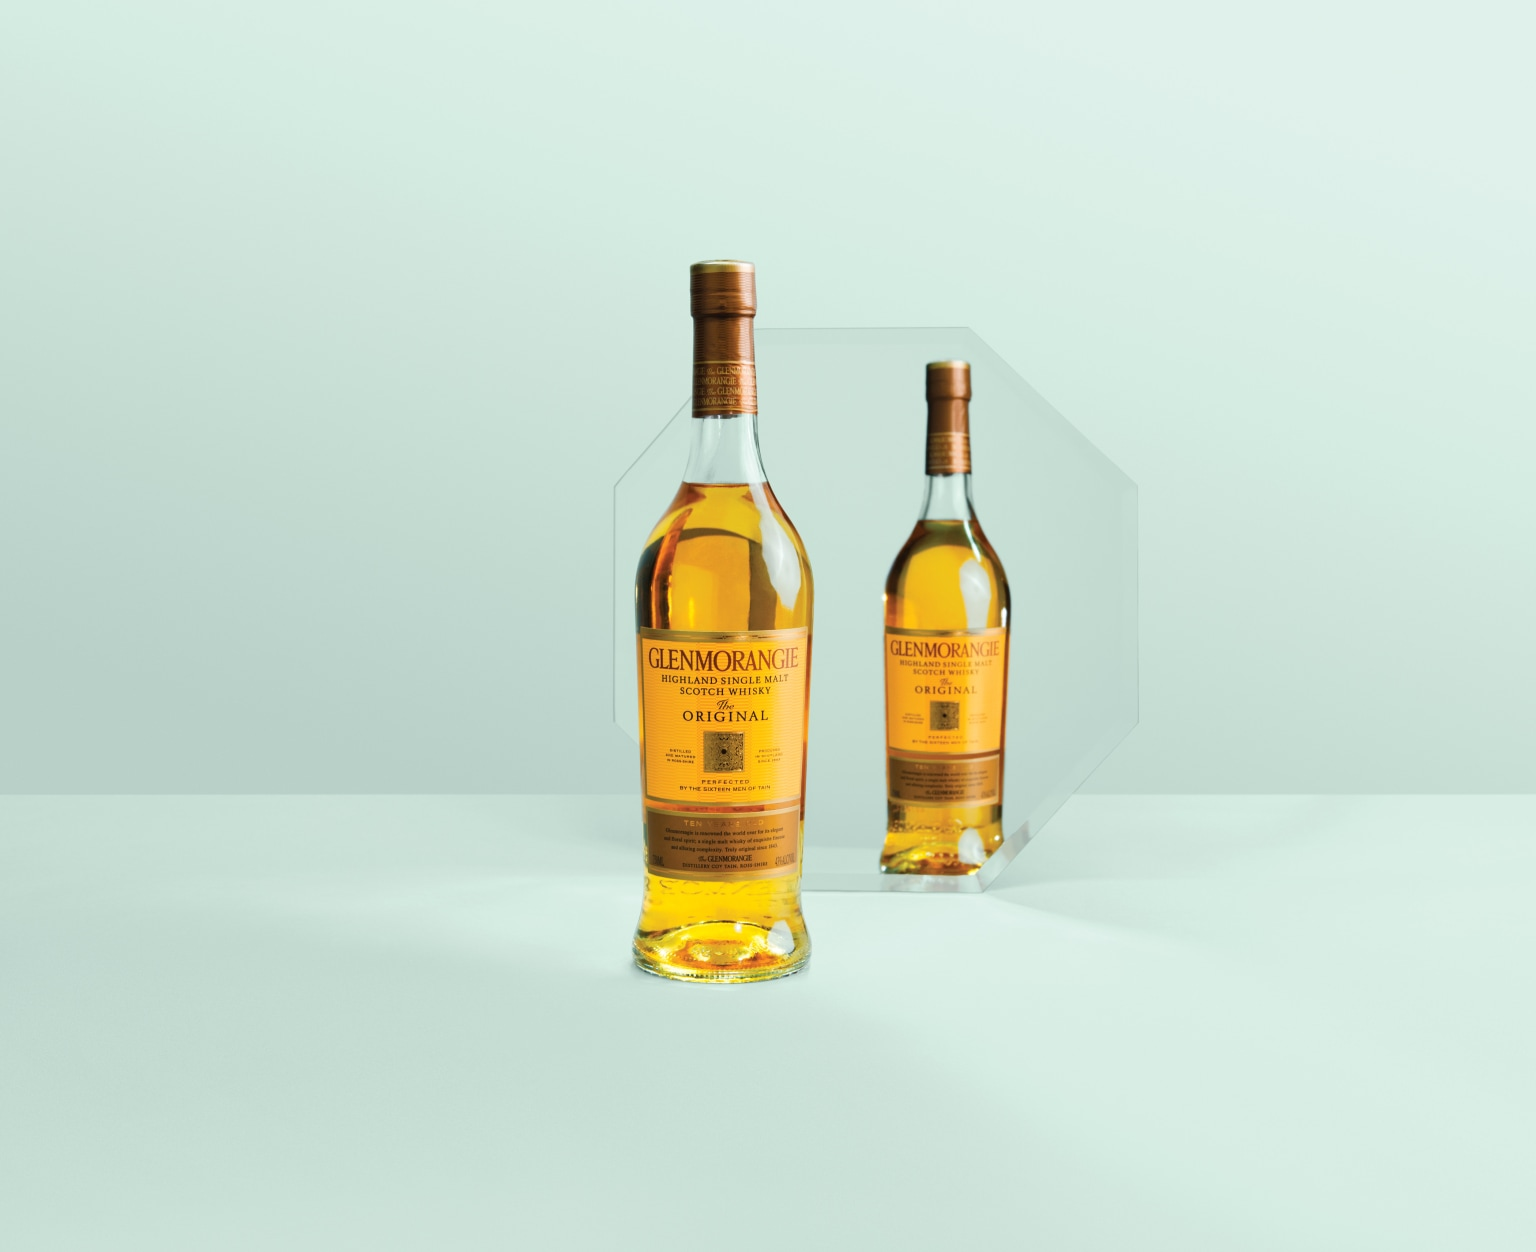 GLENMORANGIE: NOT YOUR TYPICAL SINGLE MALT